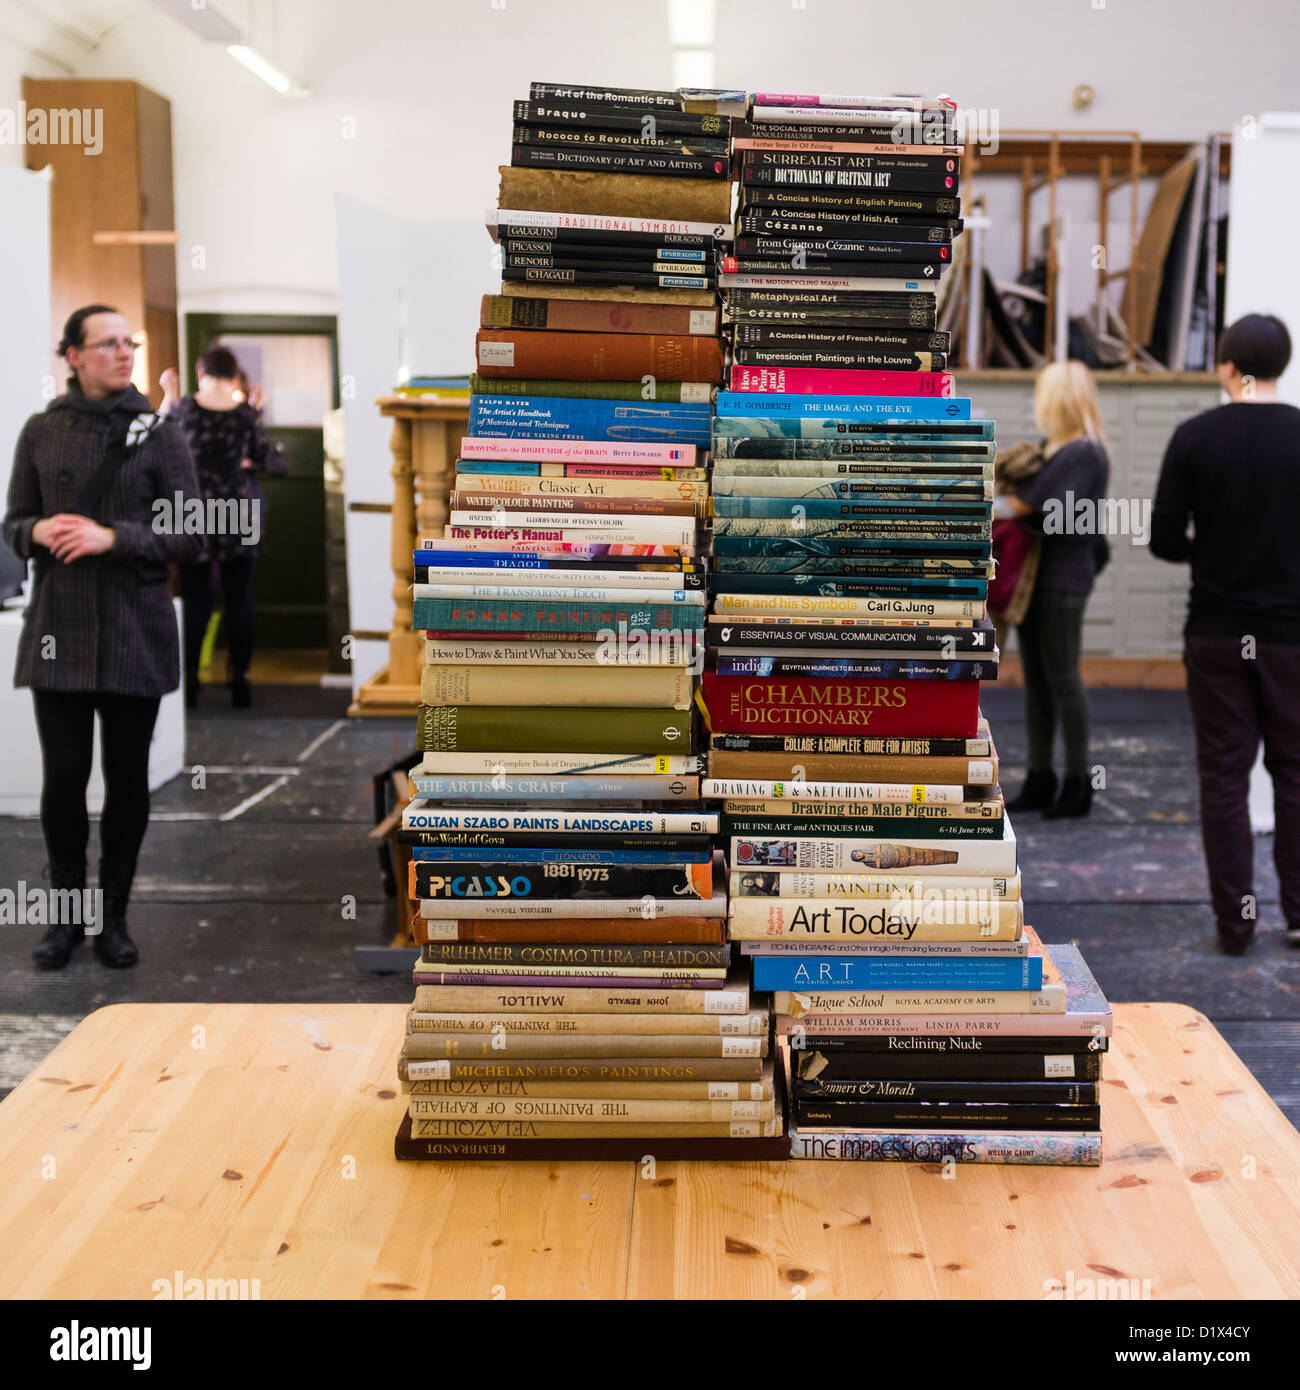 Stacks of art history theory text books in a gallery Aberystwyth University School of Art, part of an exhibition - Stock Image